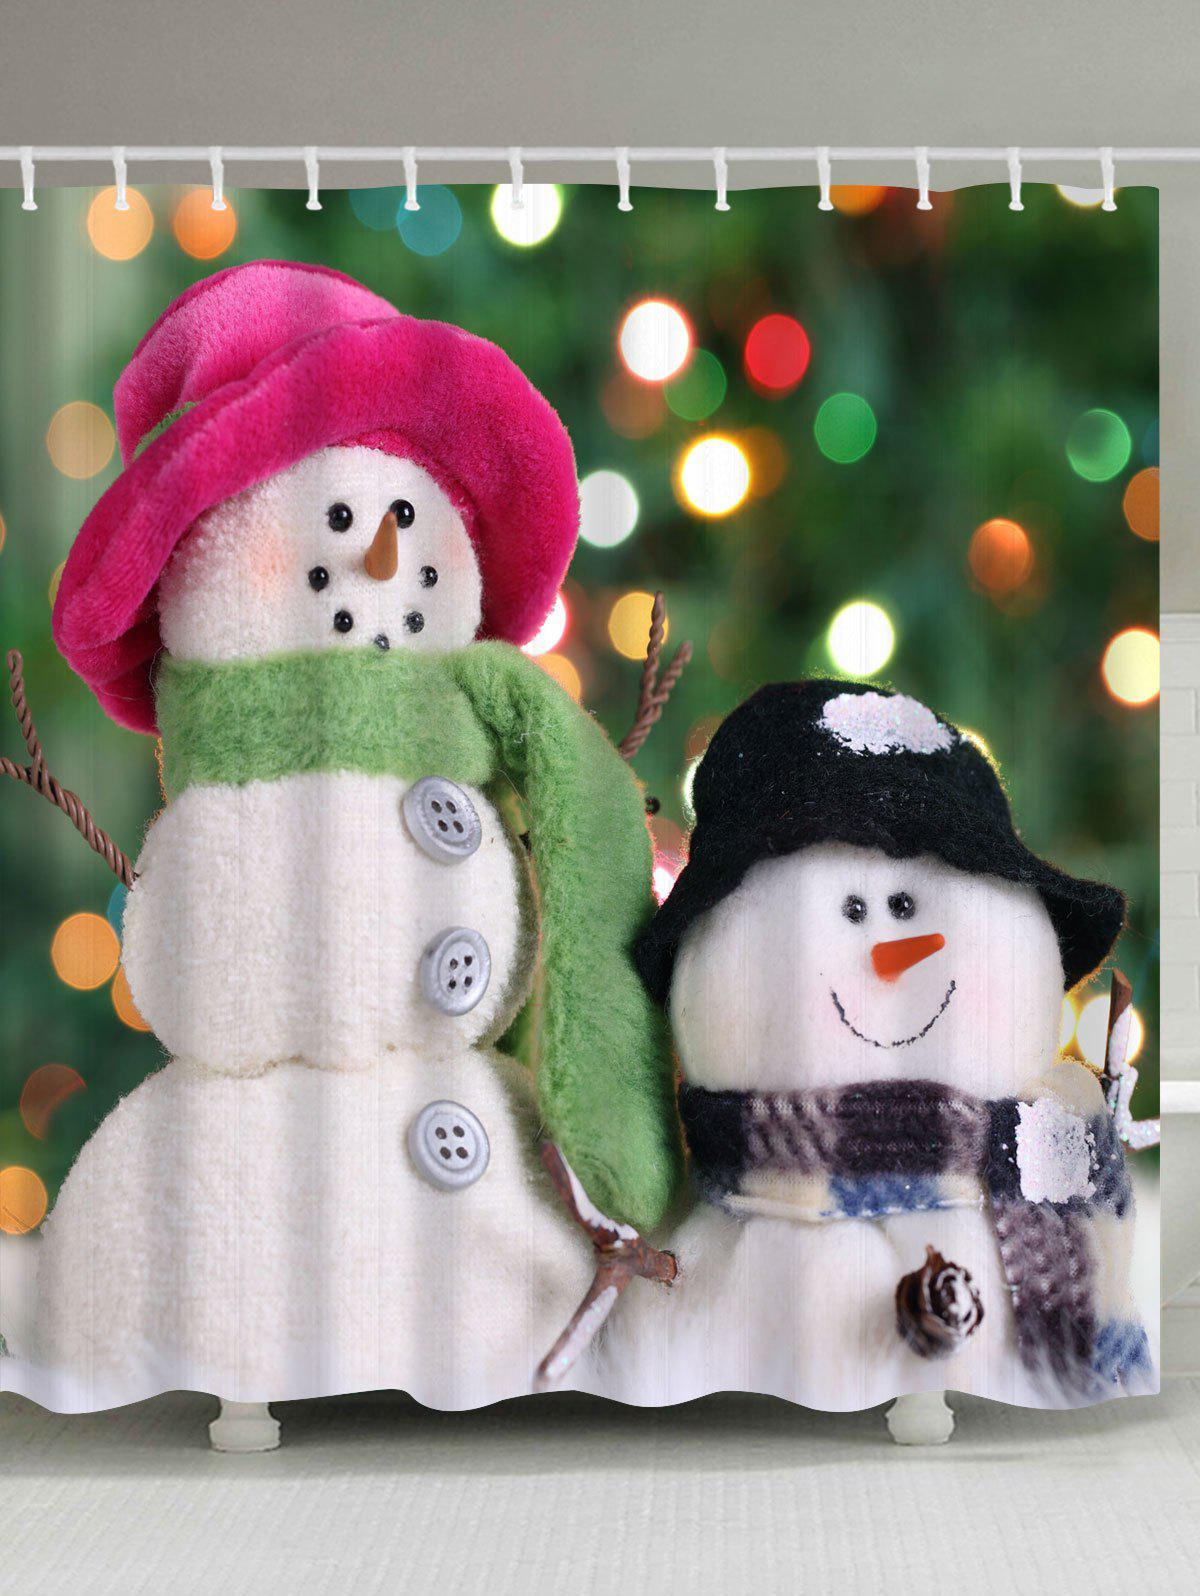 Christmas Two Snowmen Polyester Waterproof Bath CurtainHOME<br><br>Size: W71 INCH * L79 INCH; Color: GREEN; Products Type: Shower Curtains; Materials: Polyester; Pattern: Snowman; Style: Festival; Number of Hook Holes: W59 inch*L71 inch: 10; W71 inch*L71 inch: 12; W71 inch*L79 inch: 12; Package Contents: 1 x Shower Curtain 1 x Hooks (Set);